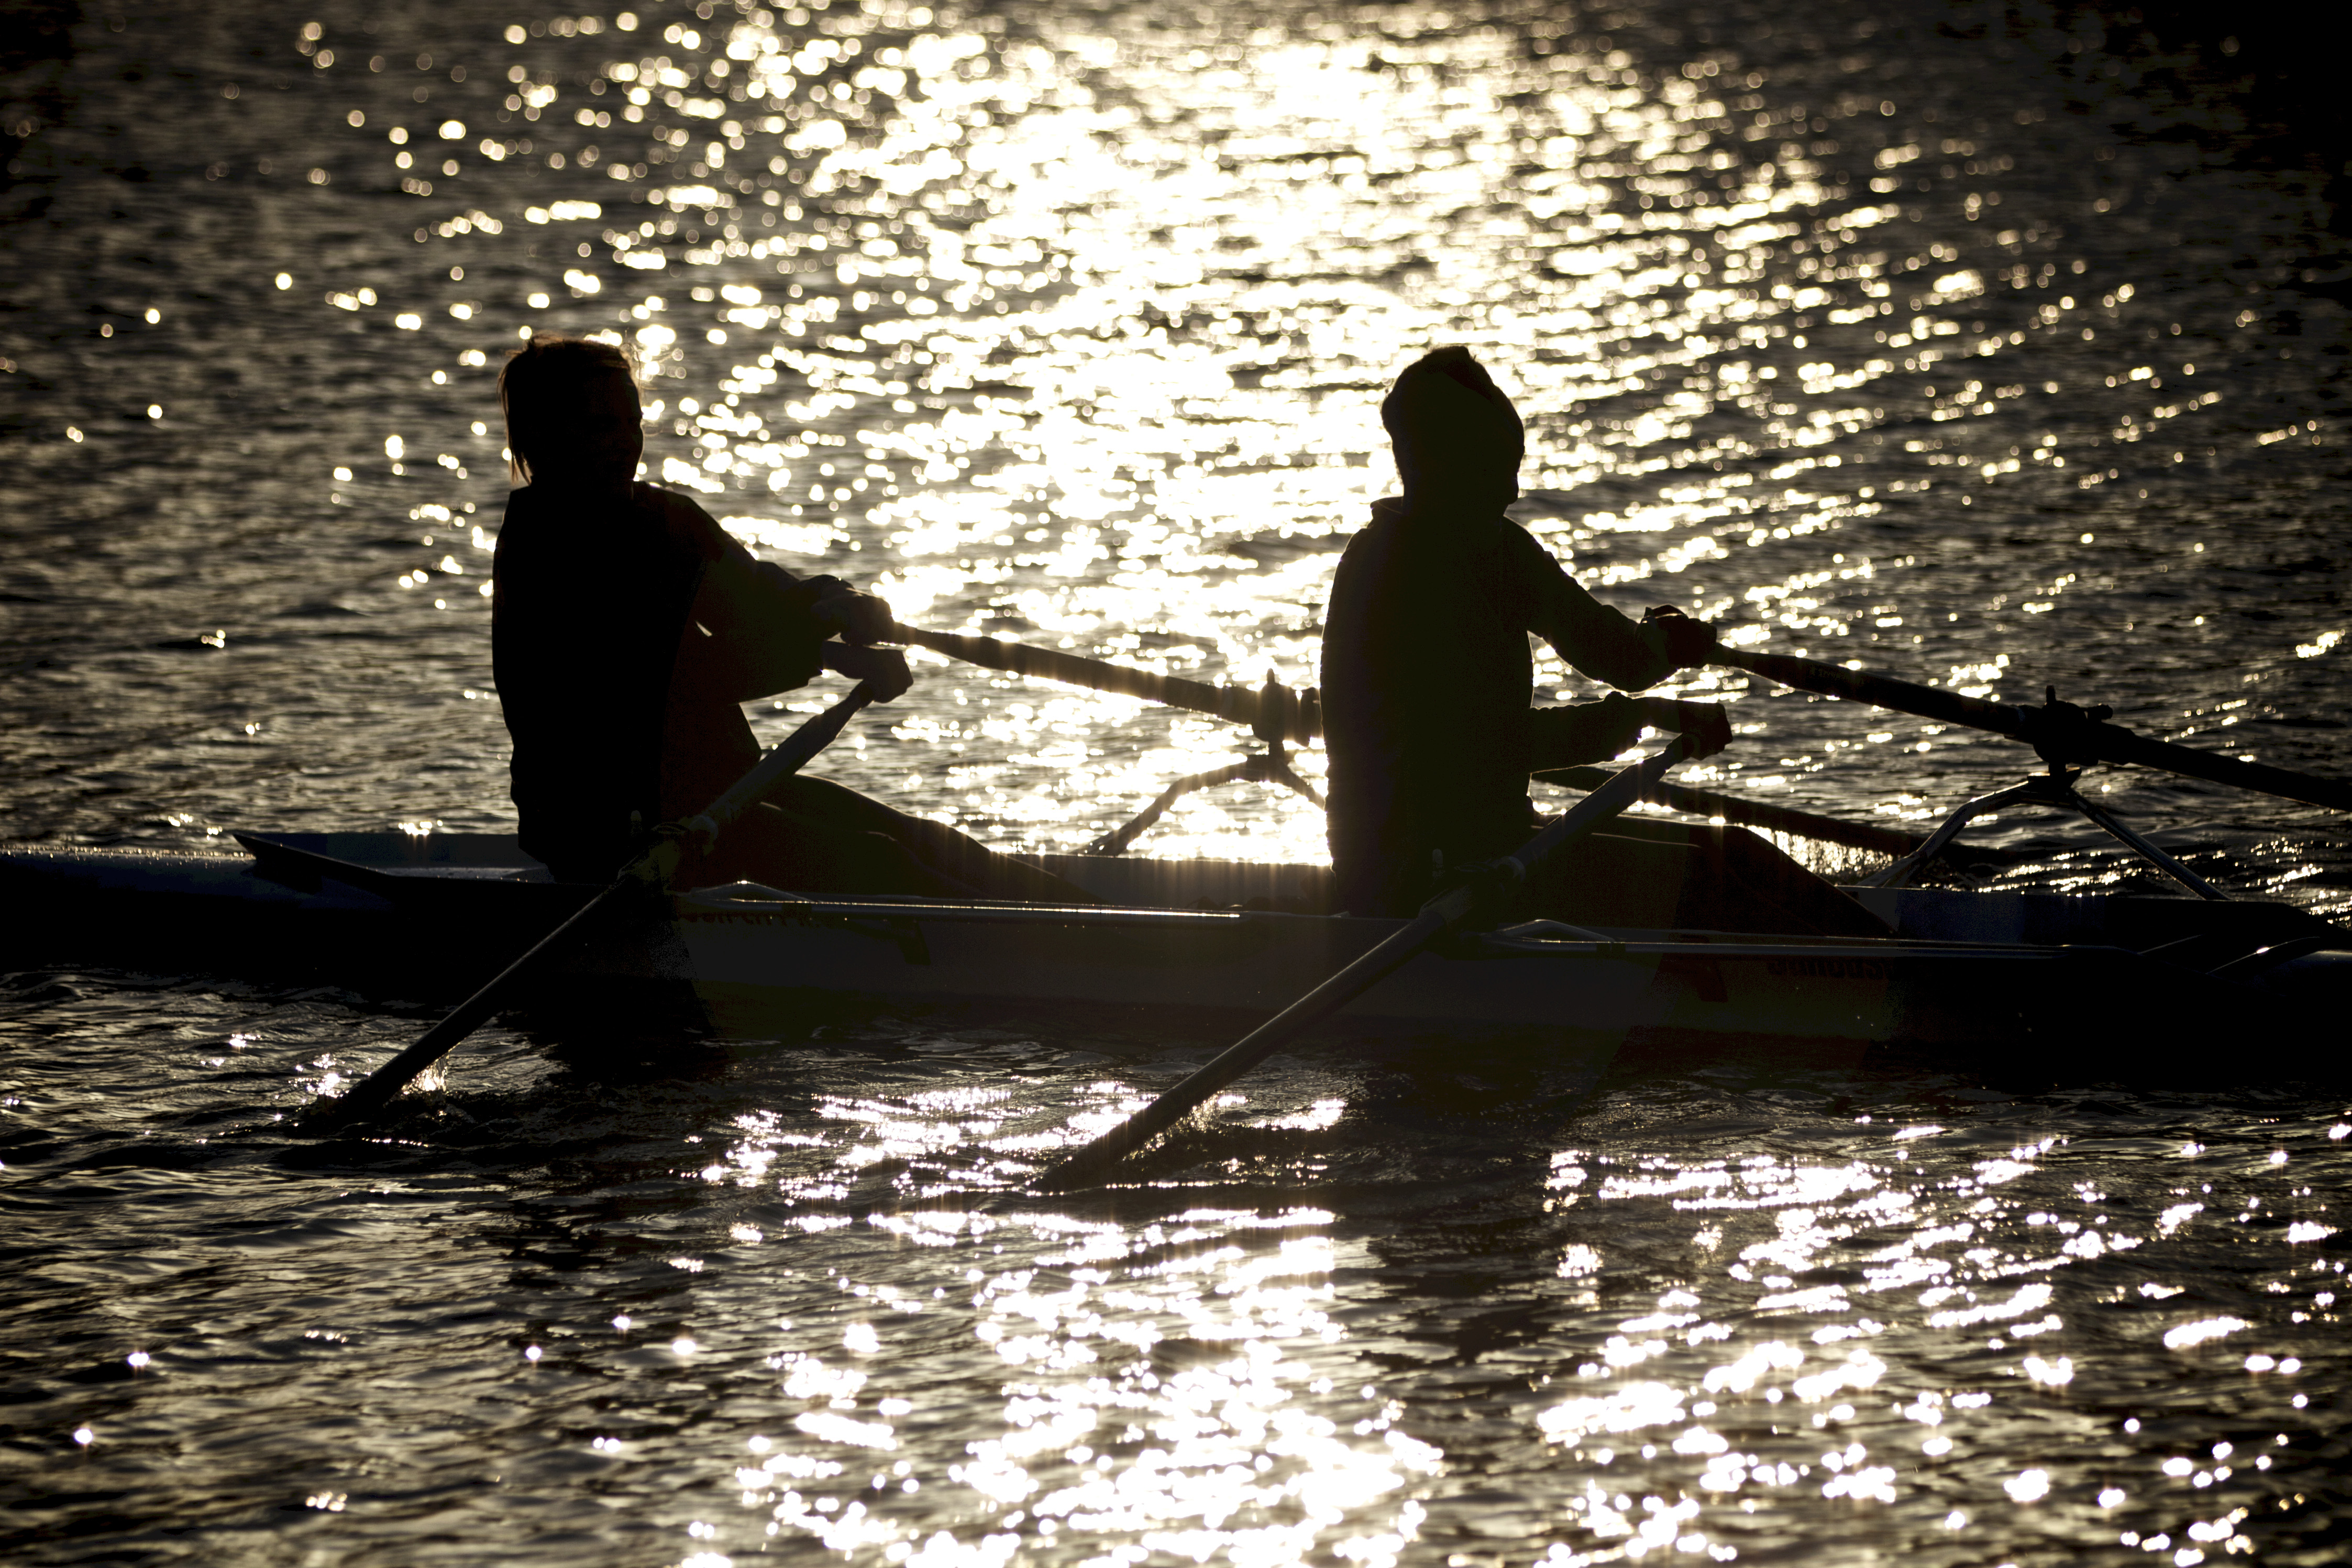 Rowers Silhouette